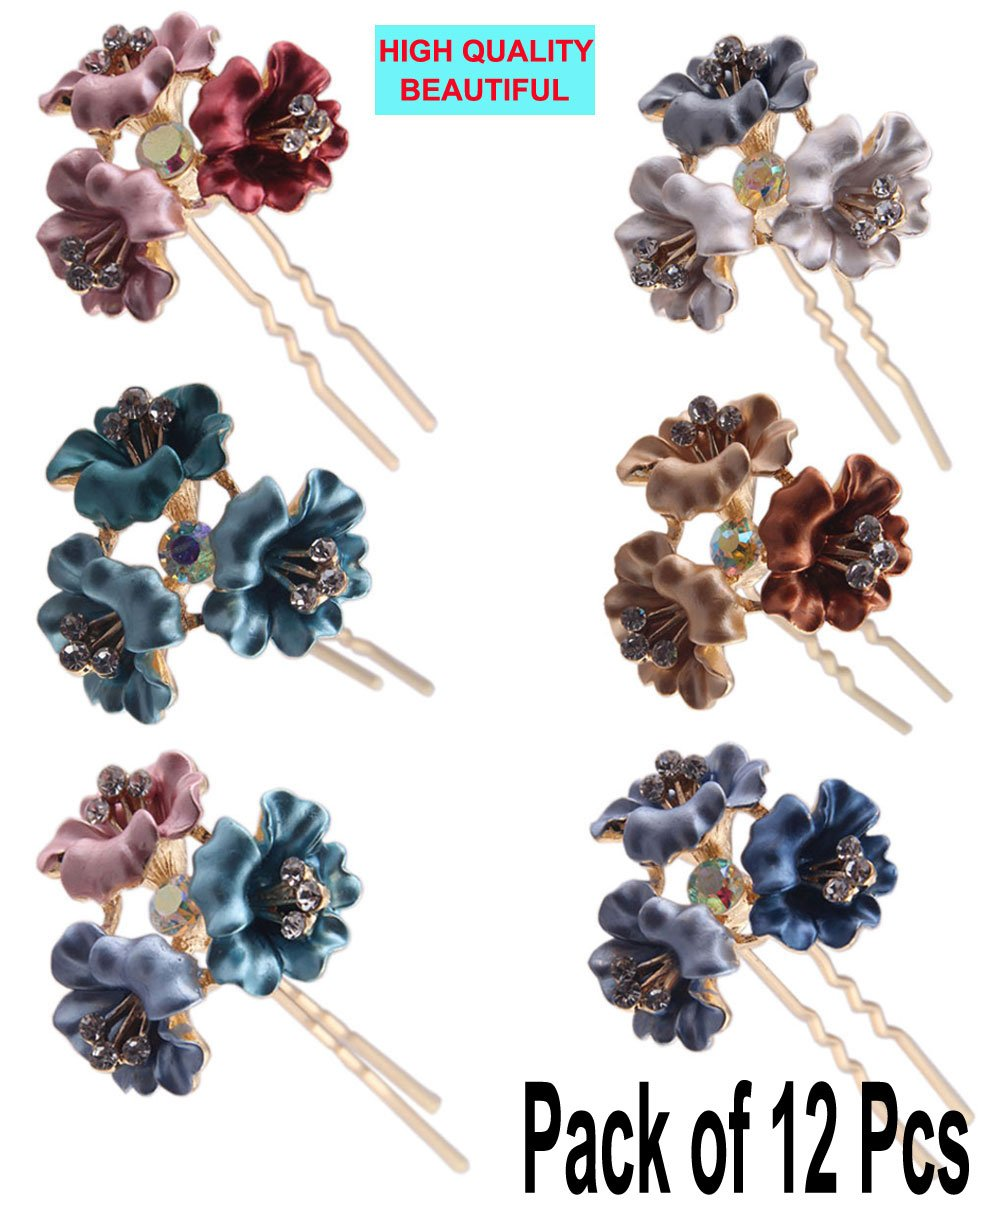 (Pack of 12 Pcs) LiveZone Beautiful Hair Ornaments Maker Colorful Flowers U Shaped Bobby Pins Crystal Rhinestones Hair Pins Stick for Women Girls (Flowers 2)